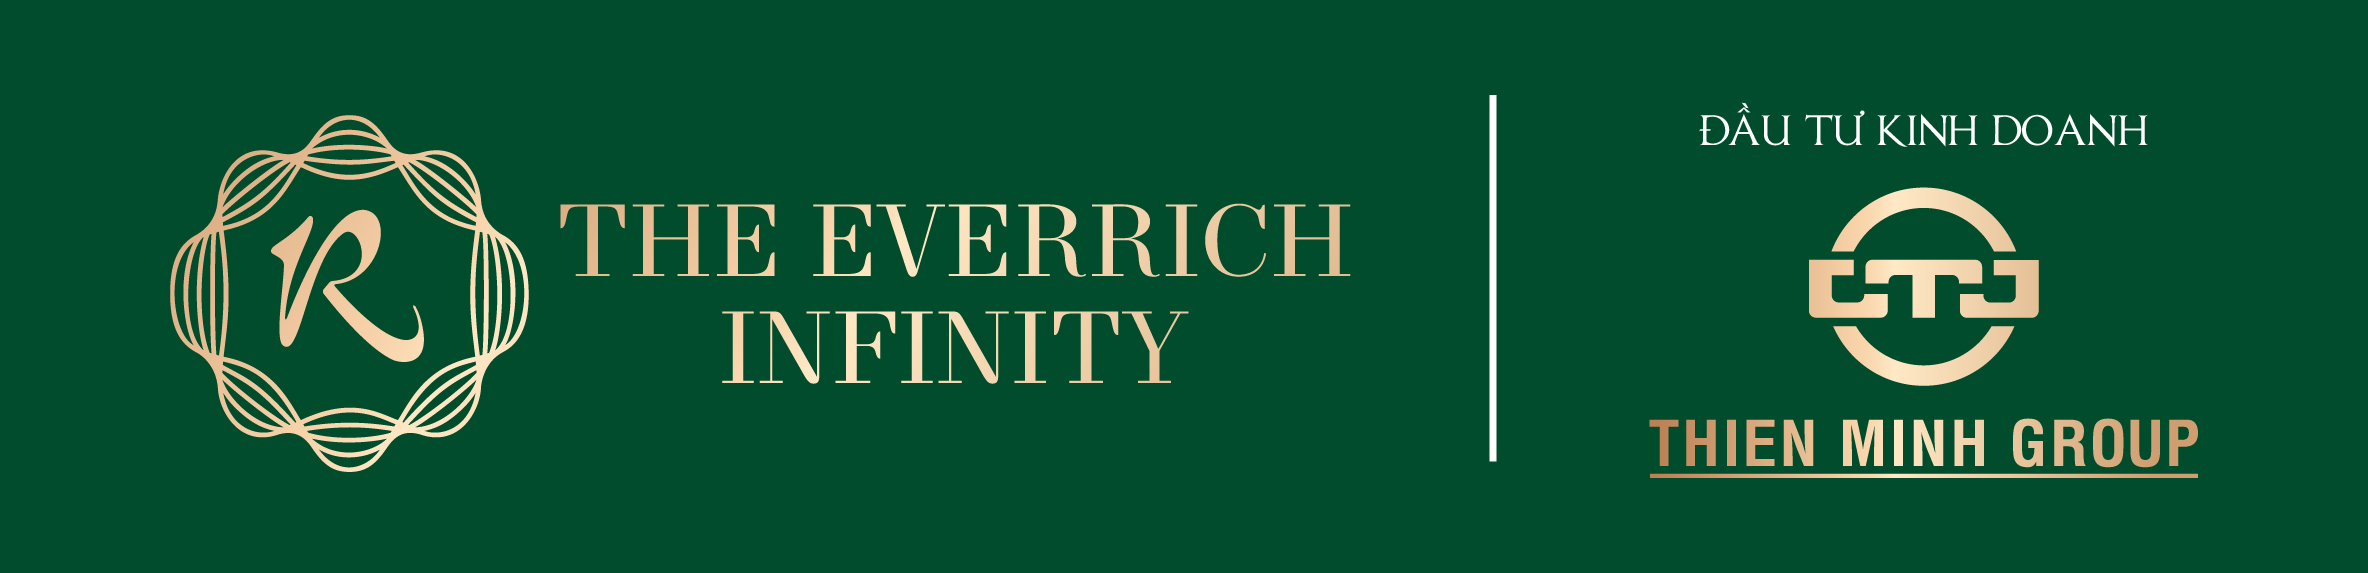 The EverRich Infinity